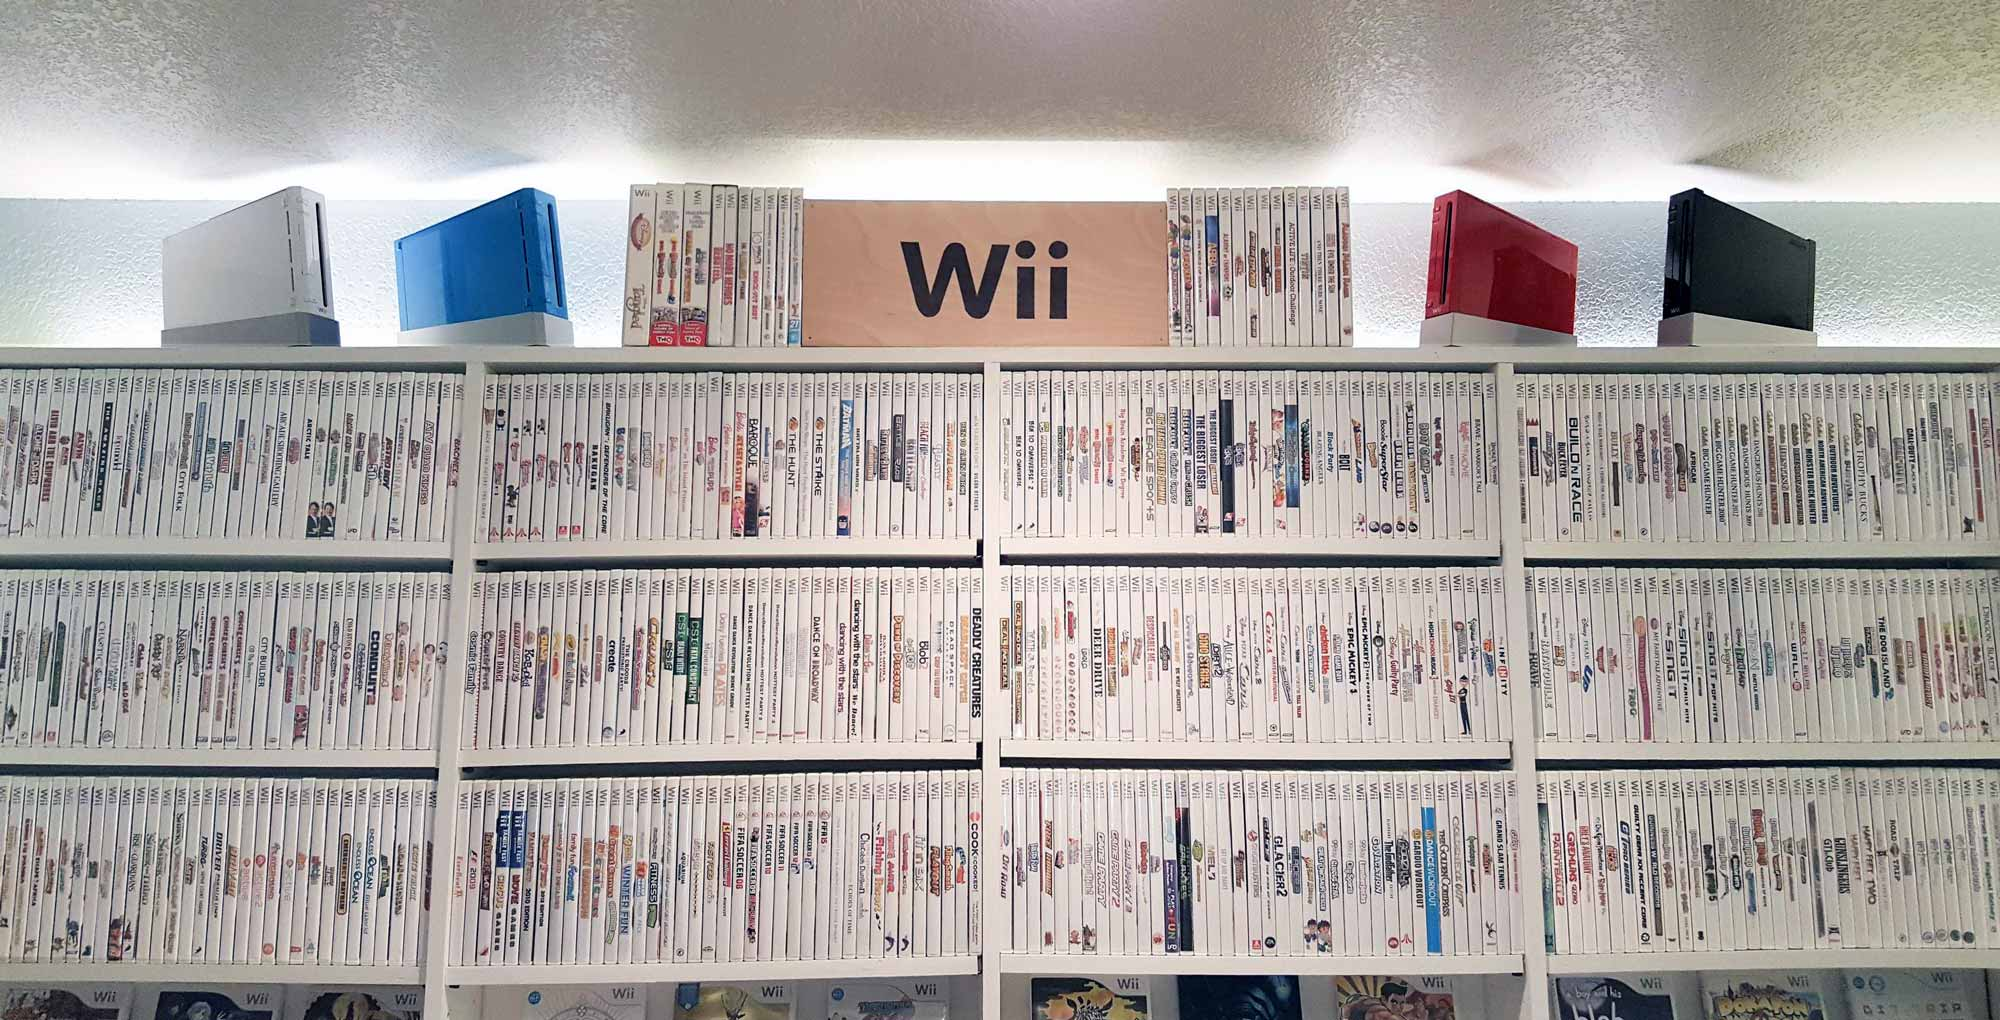 This Complete Nintendo Wii Game Collection Is Insane